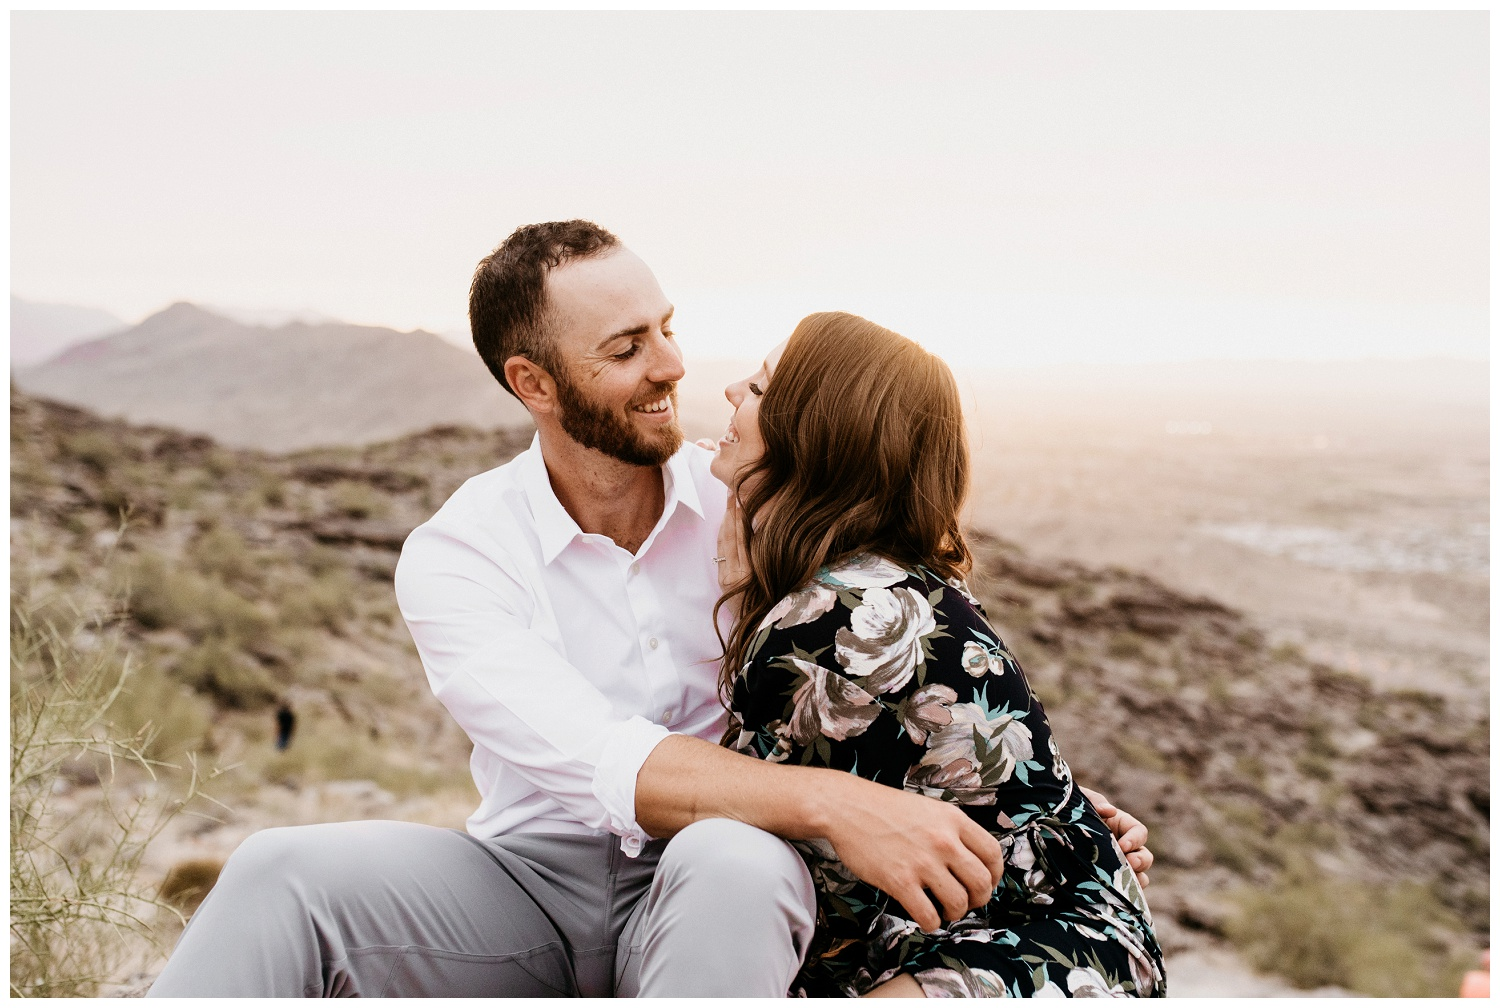 South Mountain Engagement Session Phoenix Wedding Photographer Ashtyn Nicole Photo 17